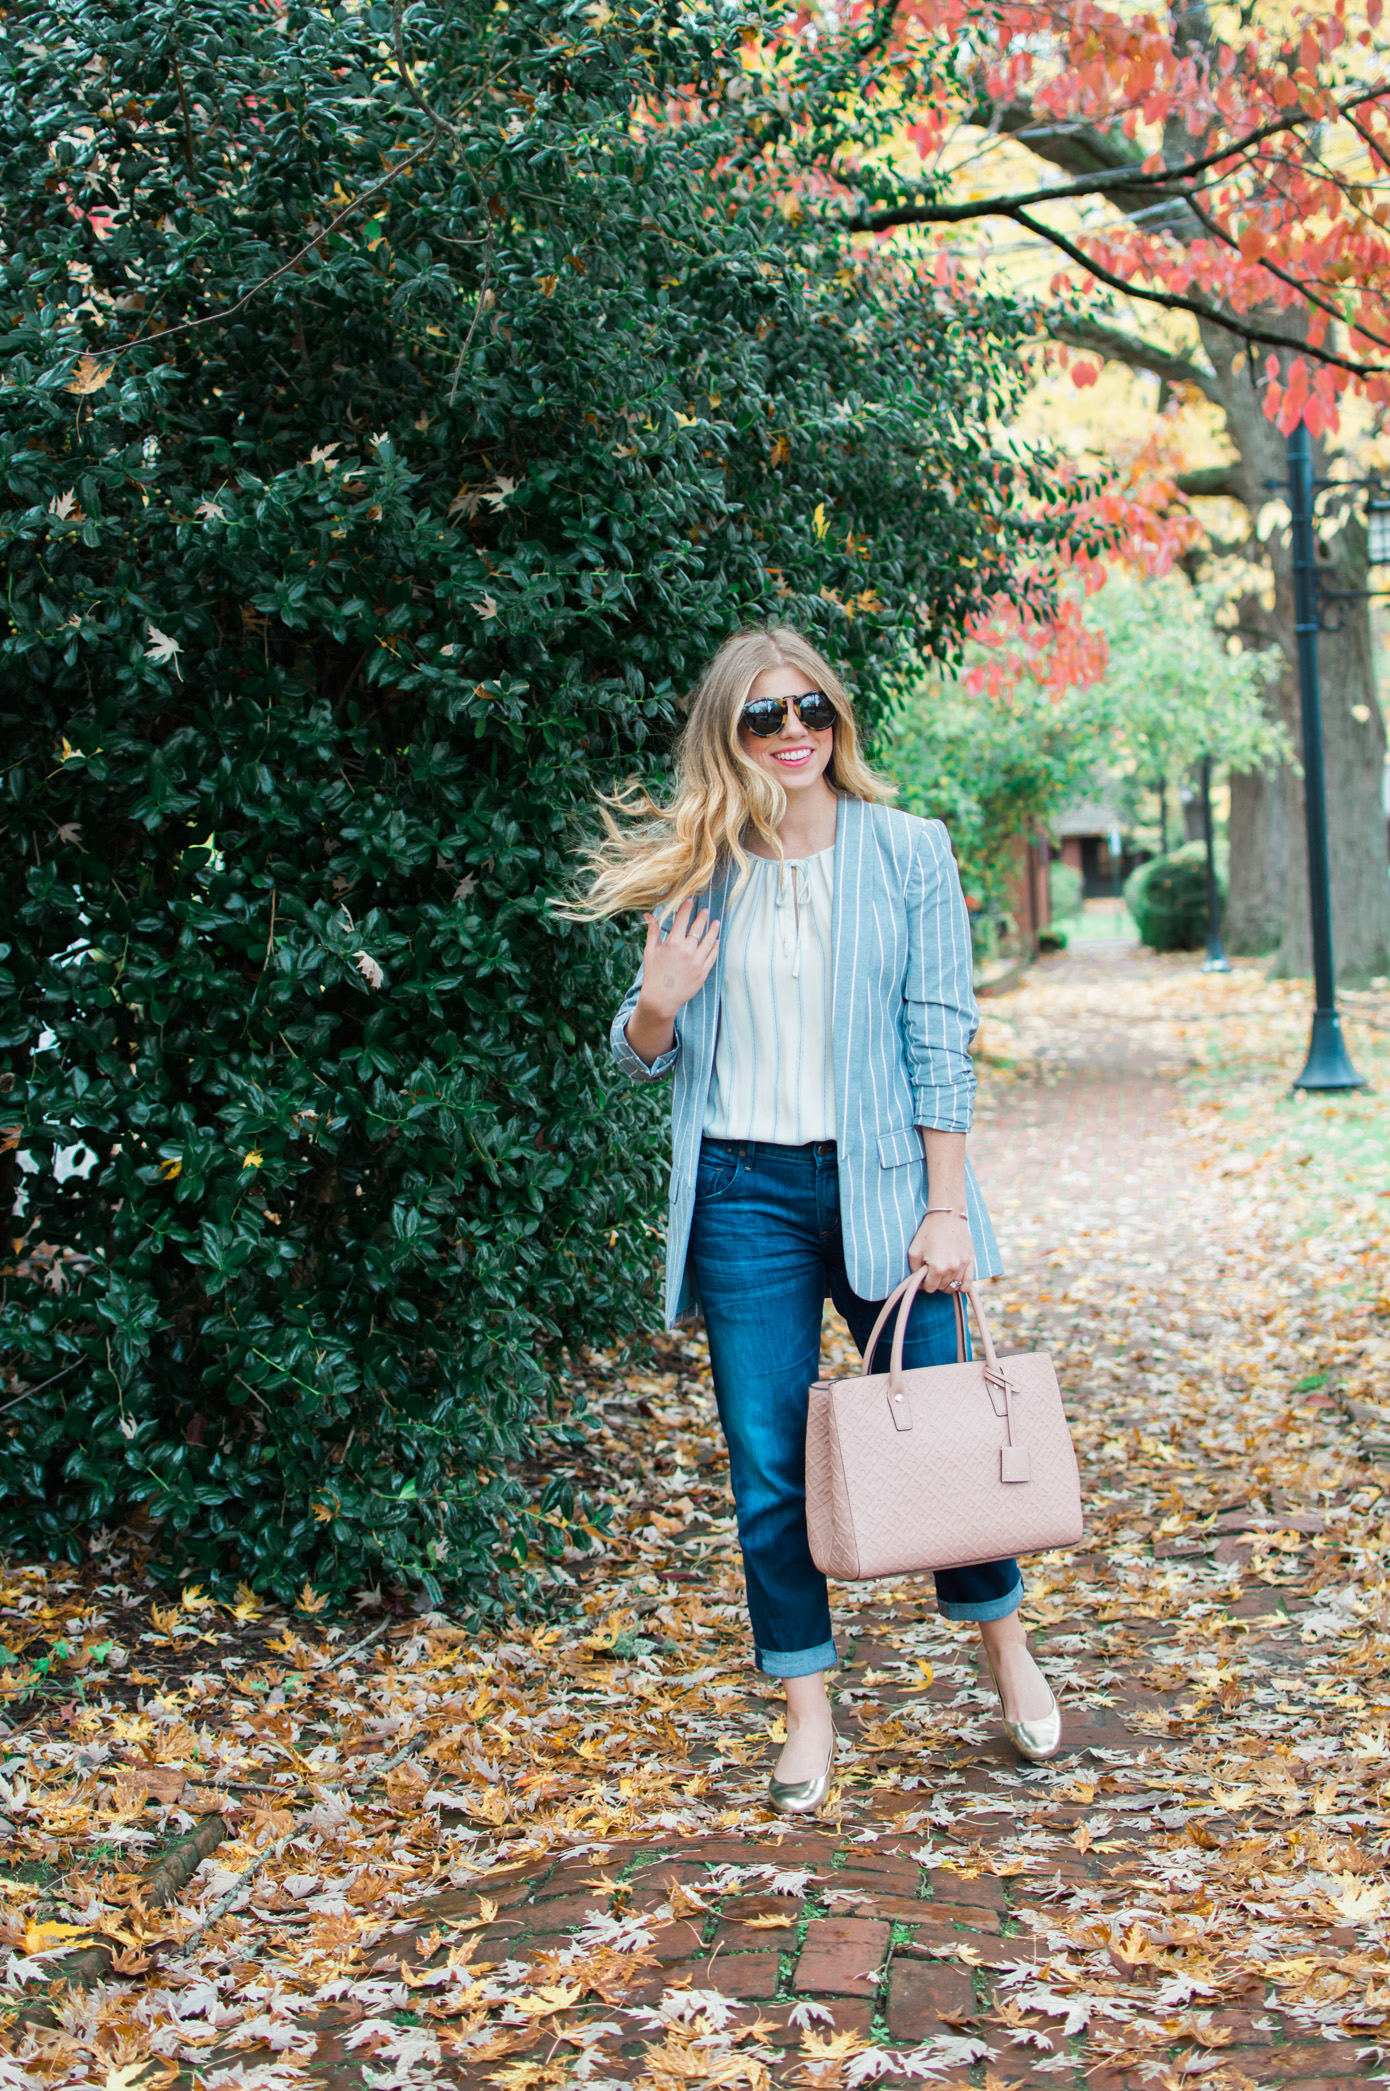 Fall Boyfriend Jeans | Two Ways to Style Boyfriend Jeans | Louella Reese Life & Style Blog